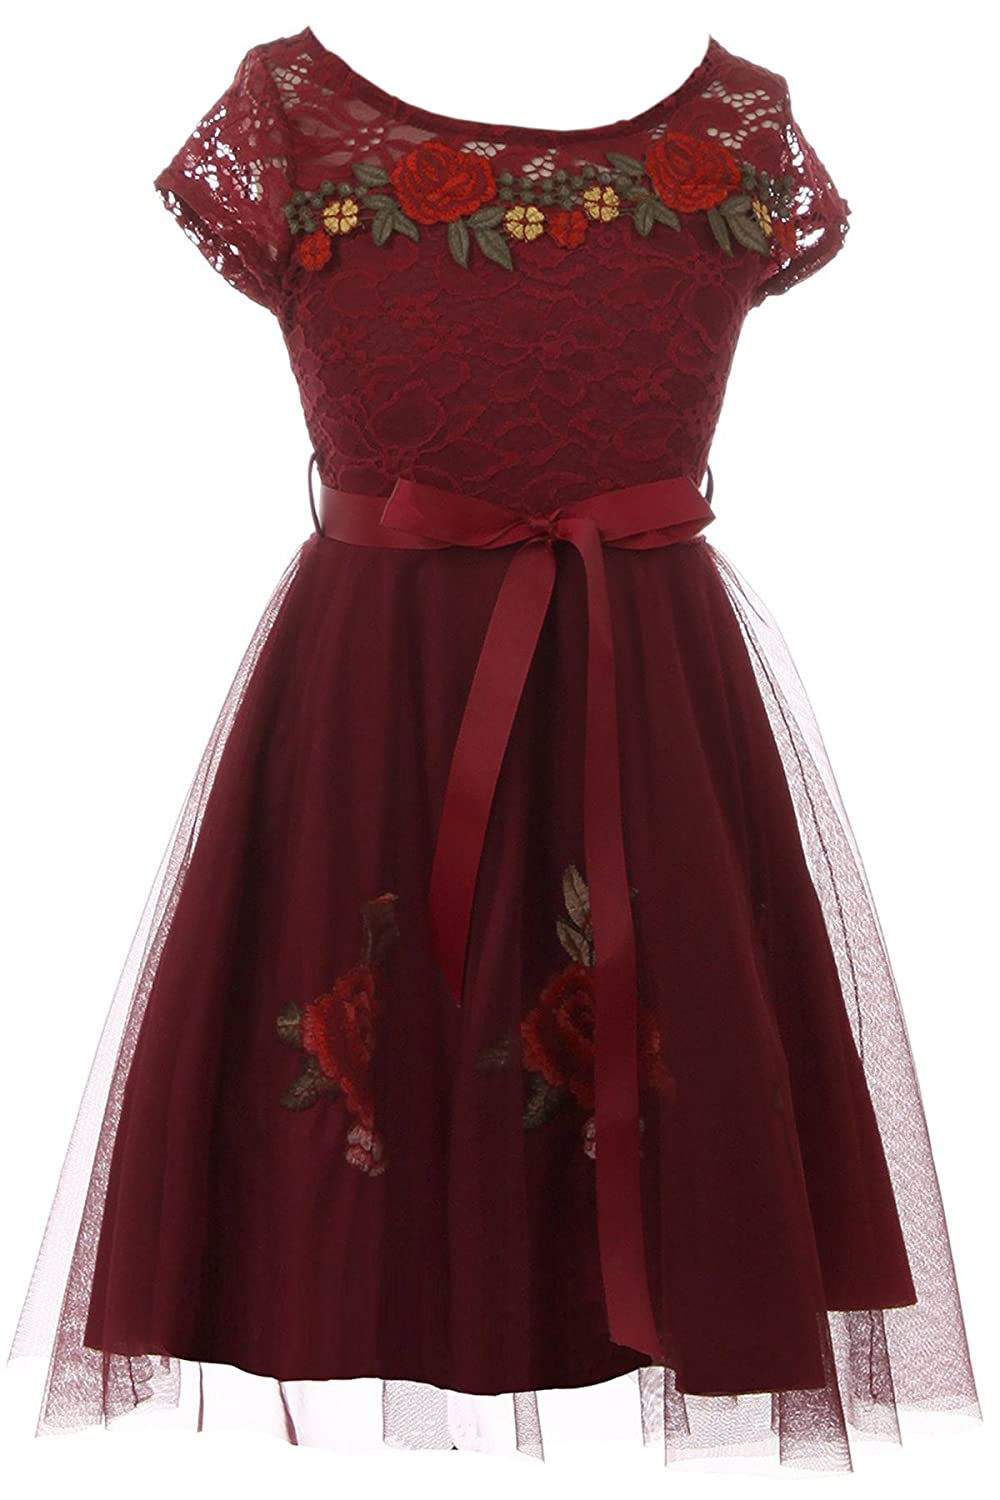 BNY Corner Lace Short Sleeve Roses Embroidery Holiday Party Flower Girl Dress